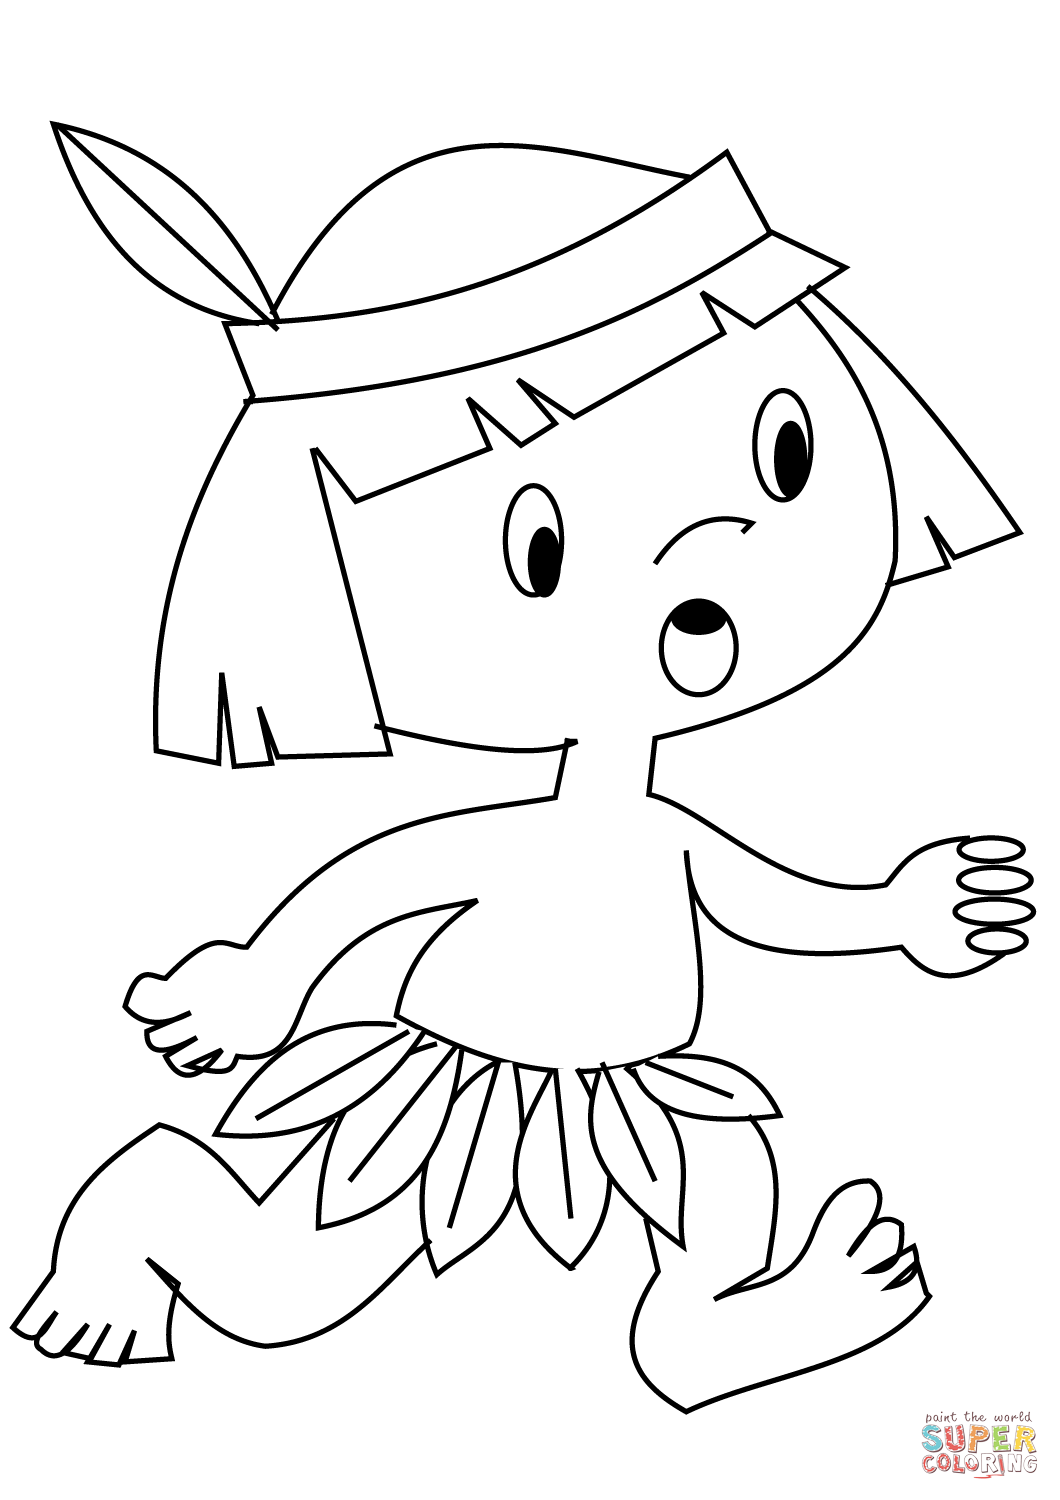 Indian headdress coloring page coloring home for Free indian coloring pages